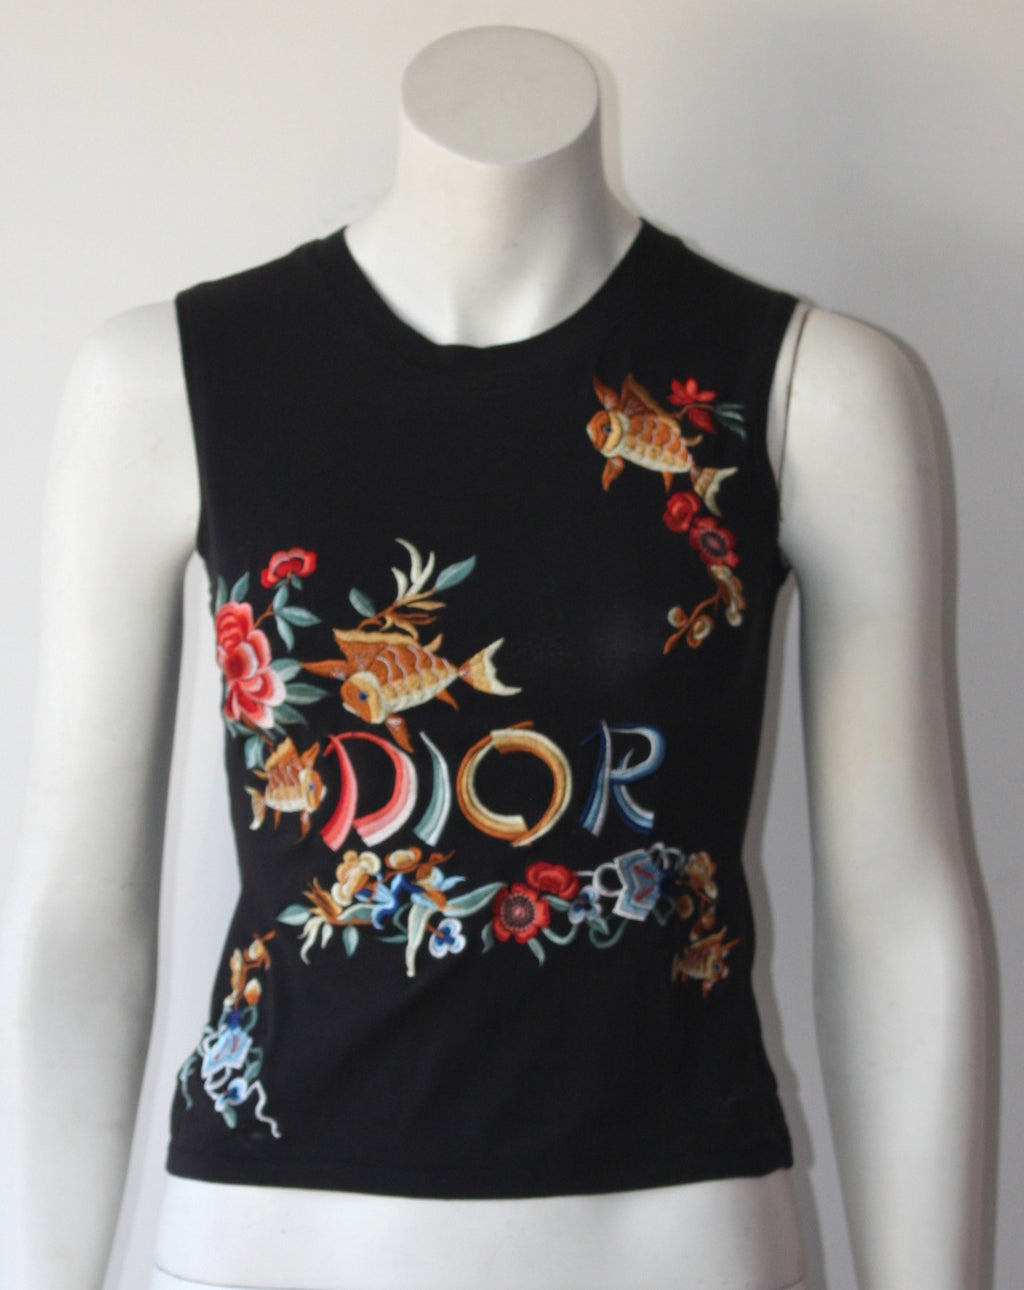 Christian Dior Embroidered Runway 2002 Tank Top - Joyce's Closet  - 1